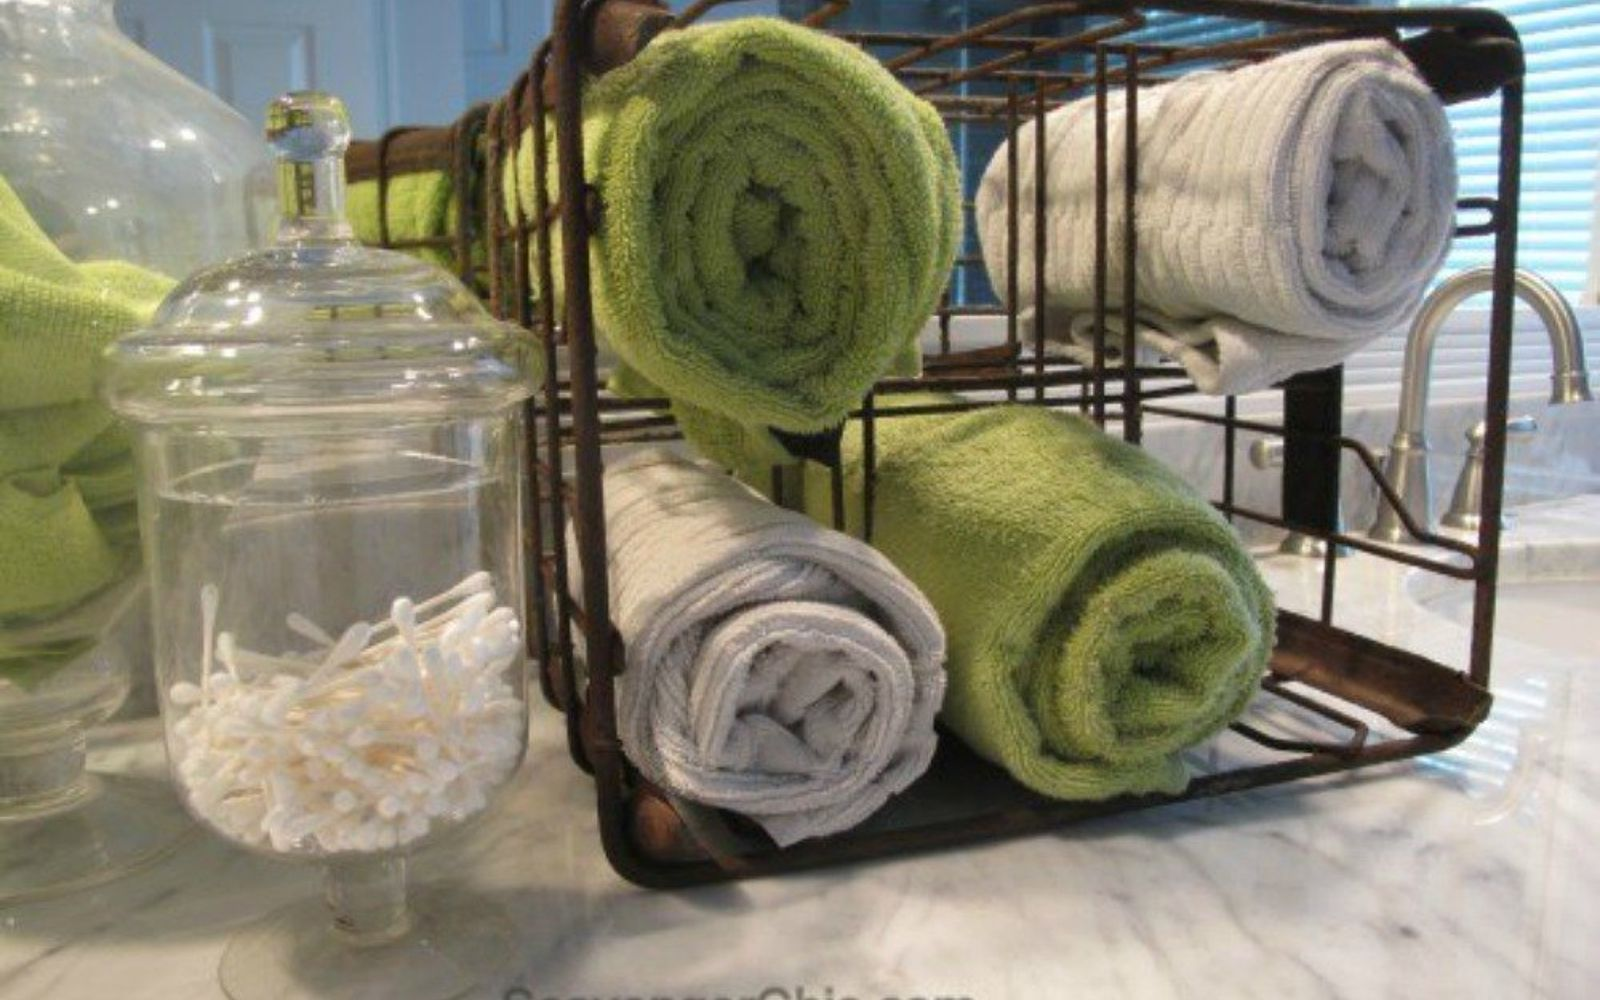 s pamper your guests without spending money 13 ideas , home decor, Keep clean towels available